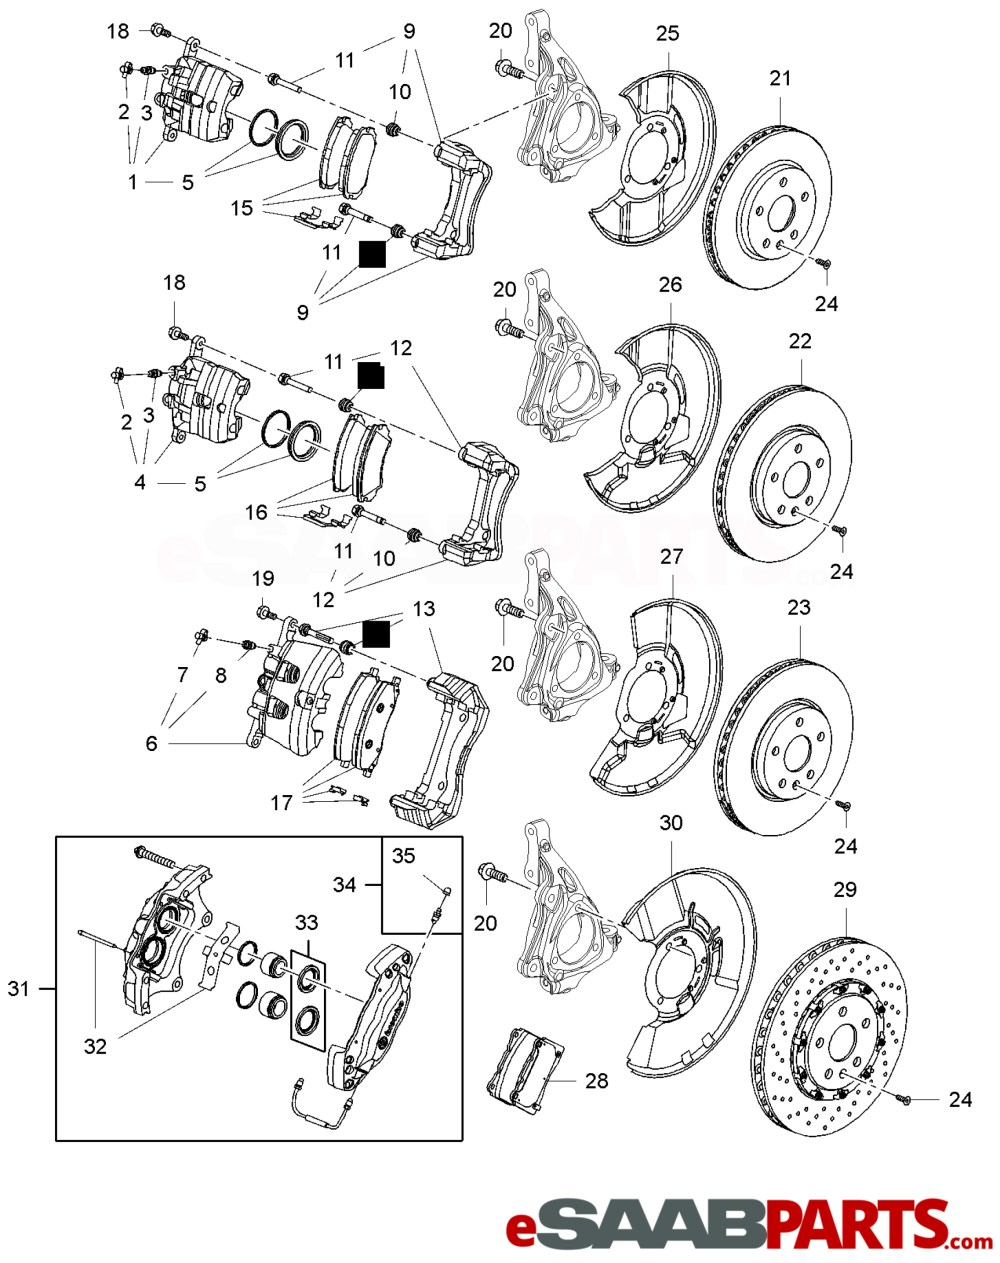 medium resolution of esaabparts com saab 9 5 650 u003e brakes parts u003e brake discesaabparts com saab 9 5 650 u003e brakes parts u003e brake disc calipers u0026 pads